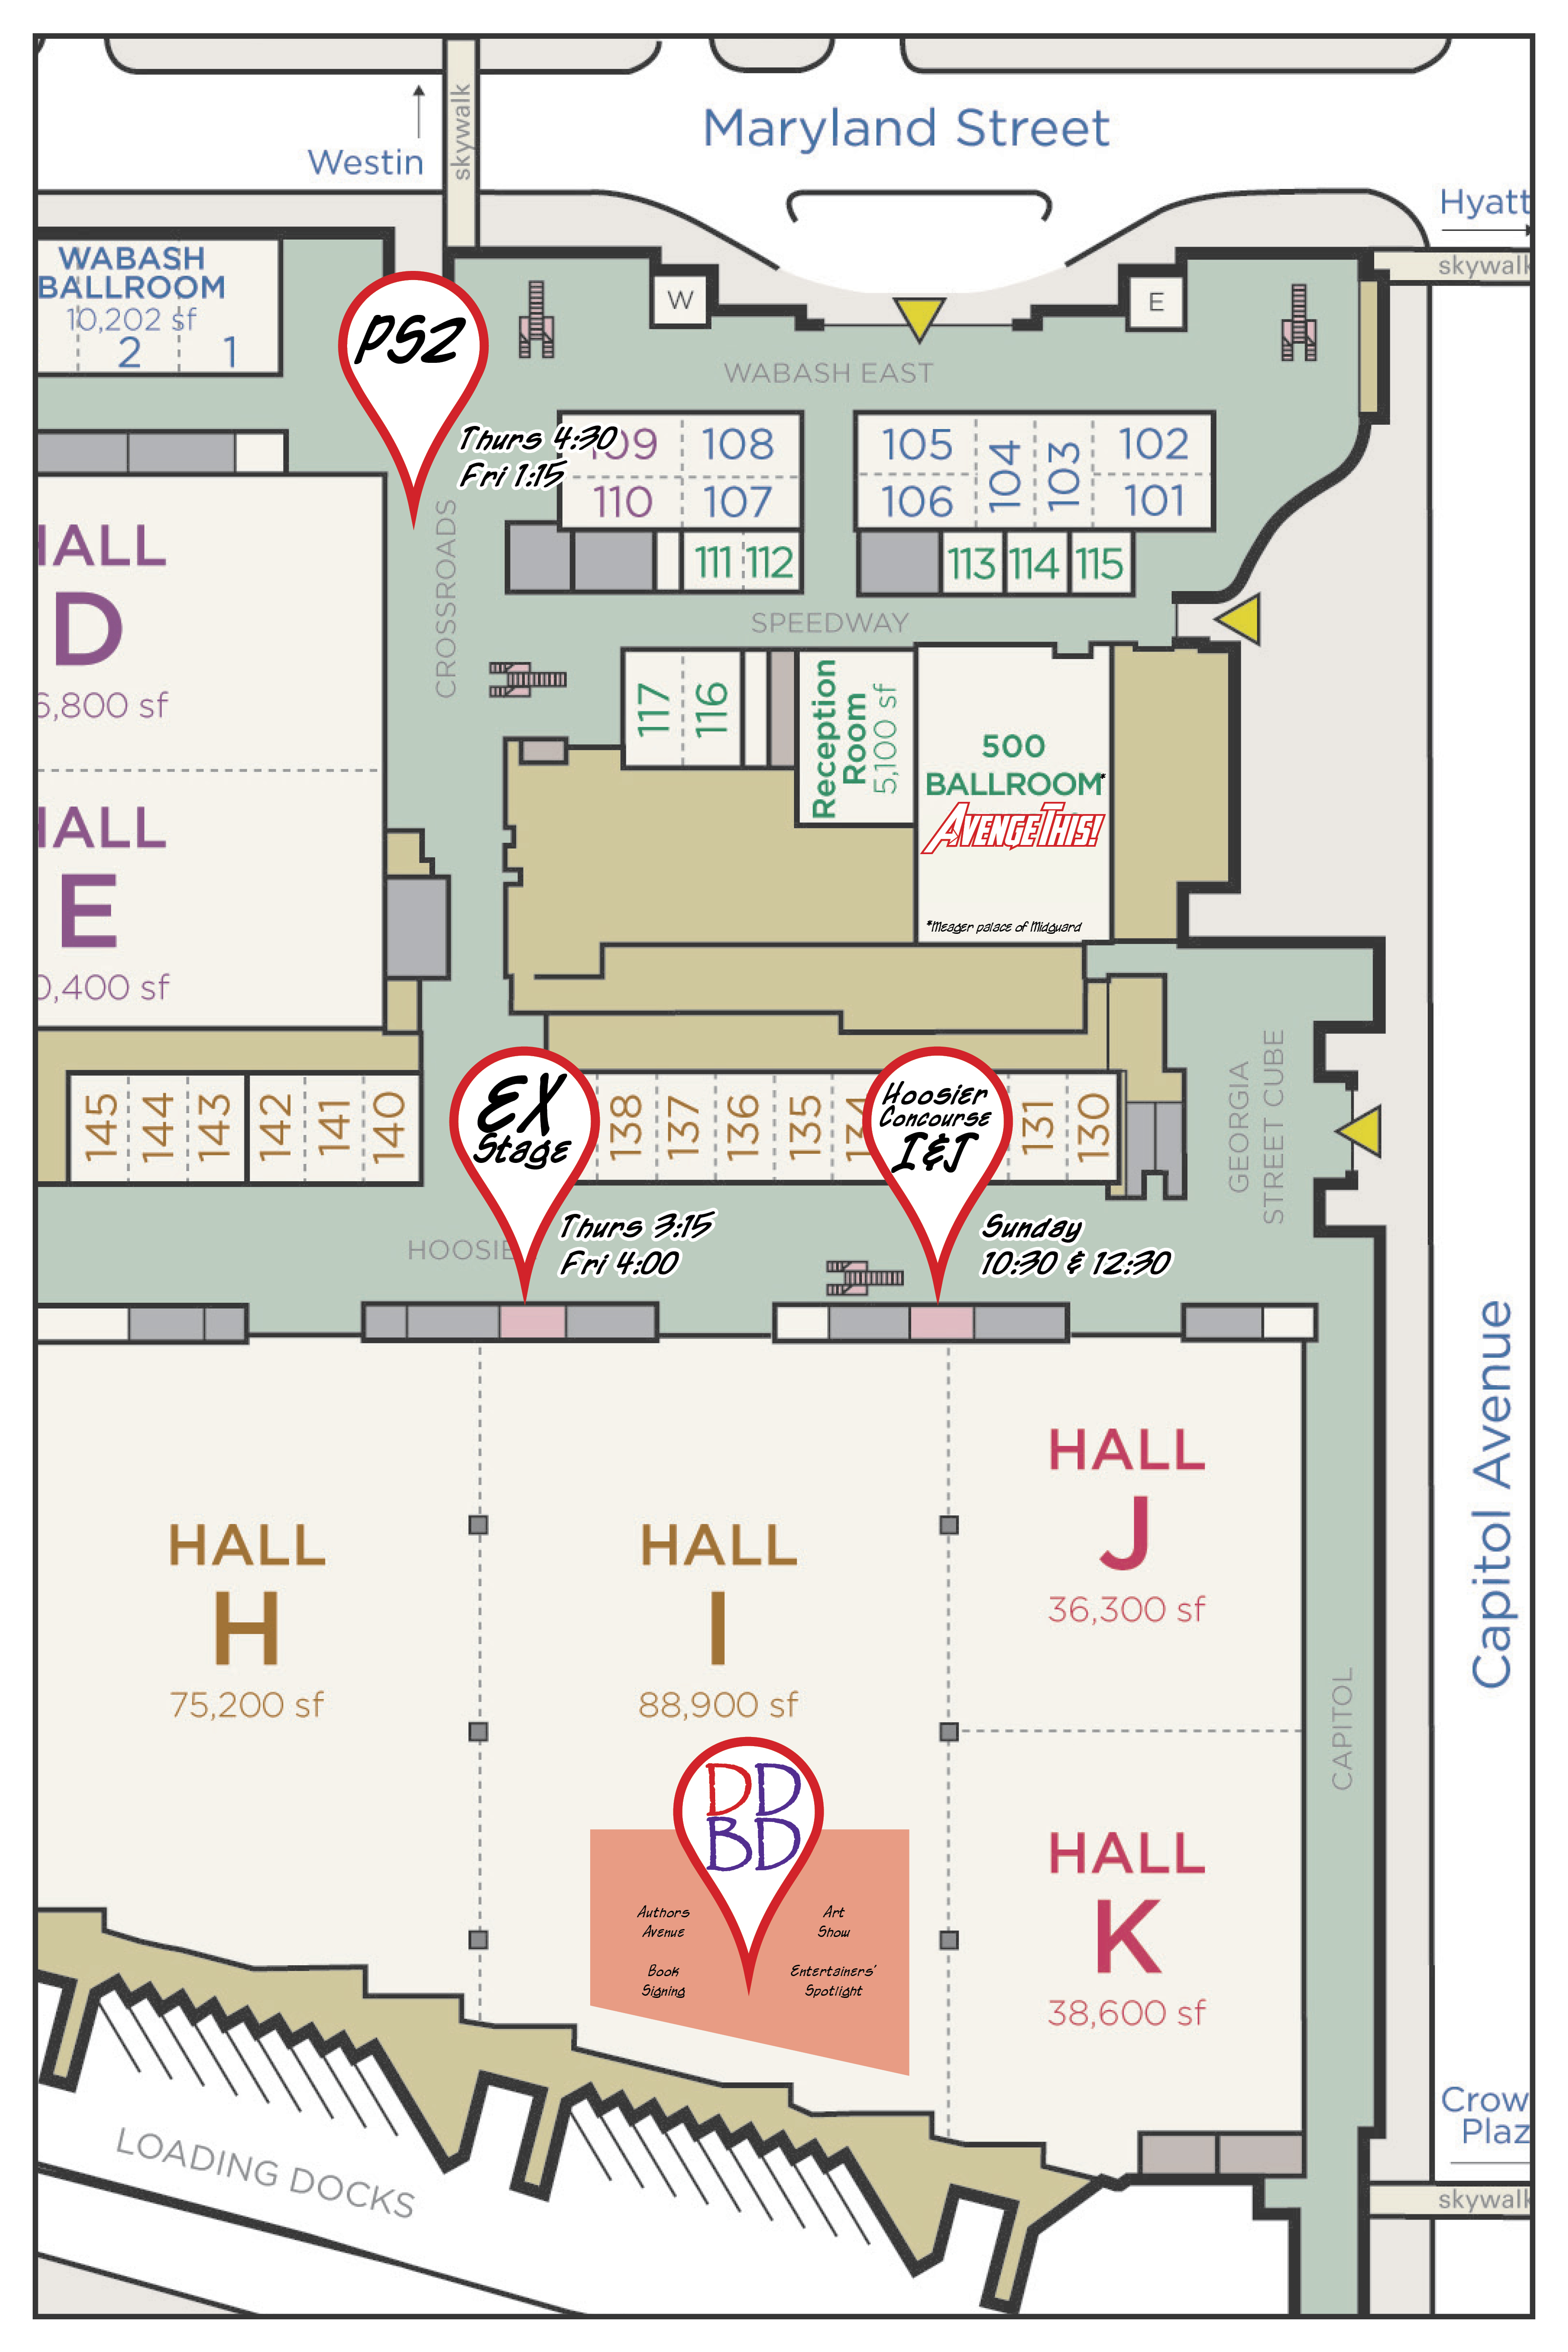 Map showing DDBD locations throughout Gen Con 2015